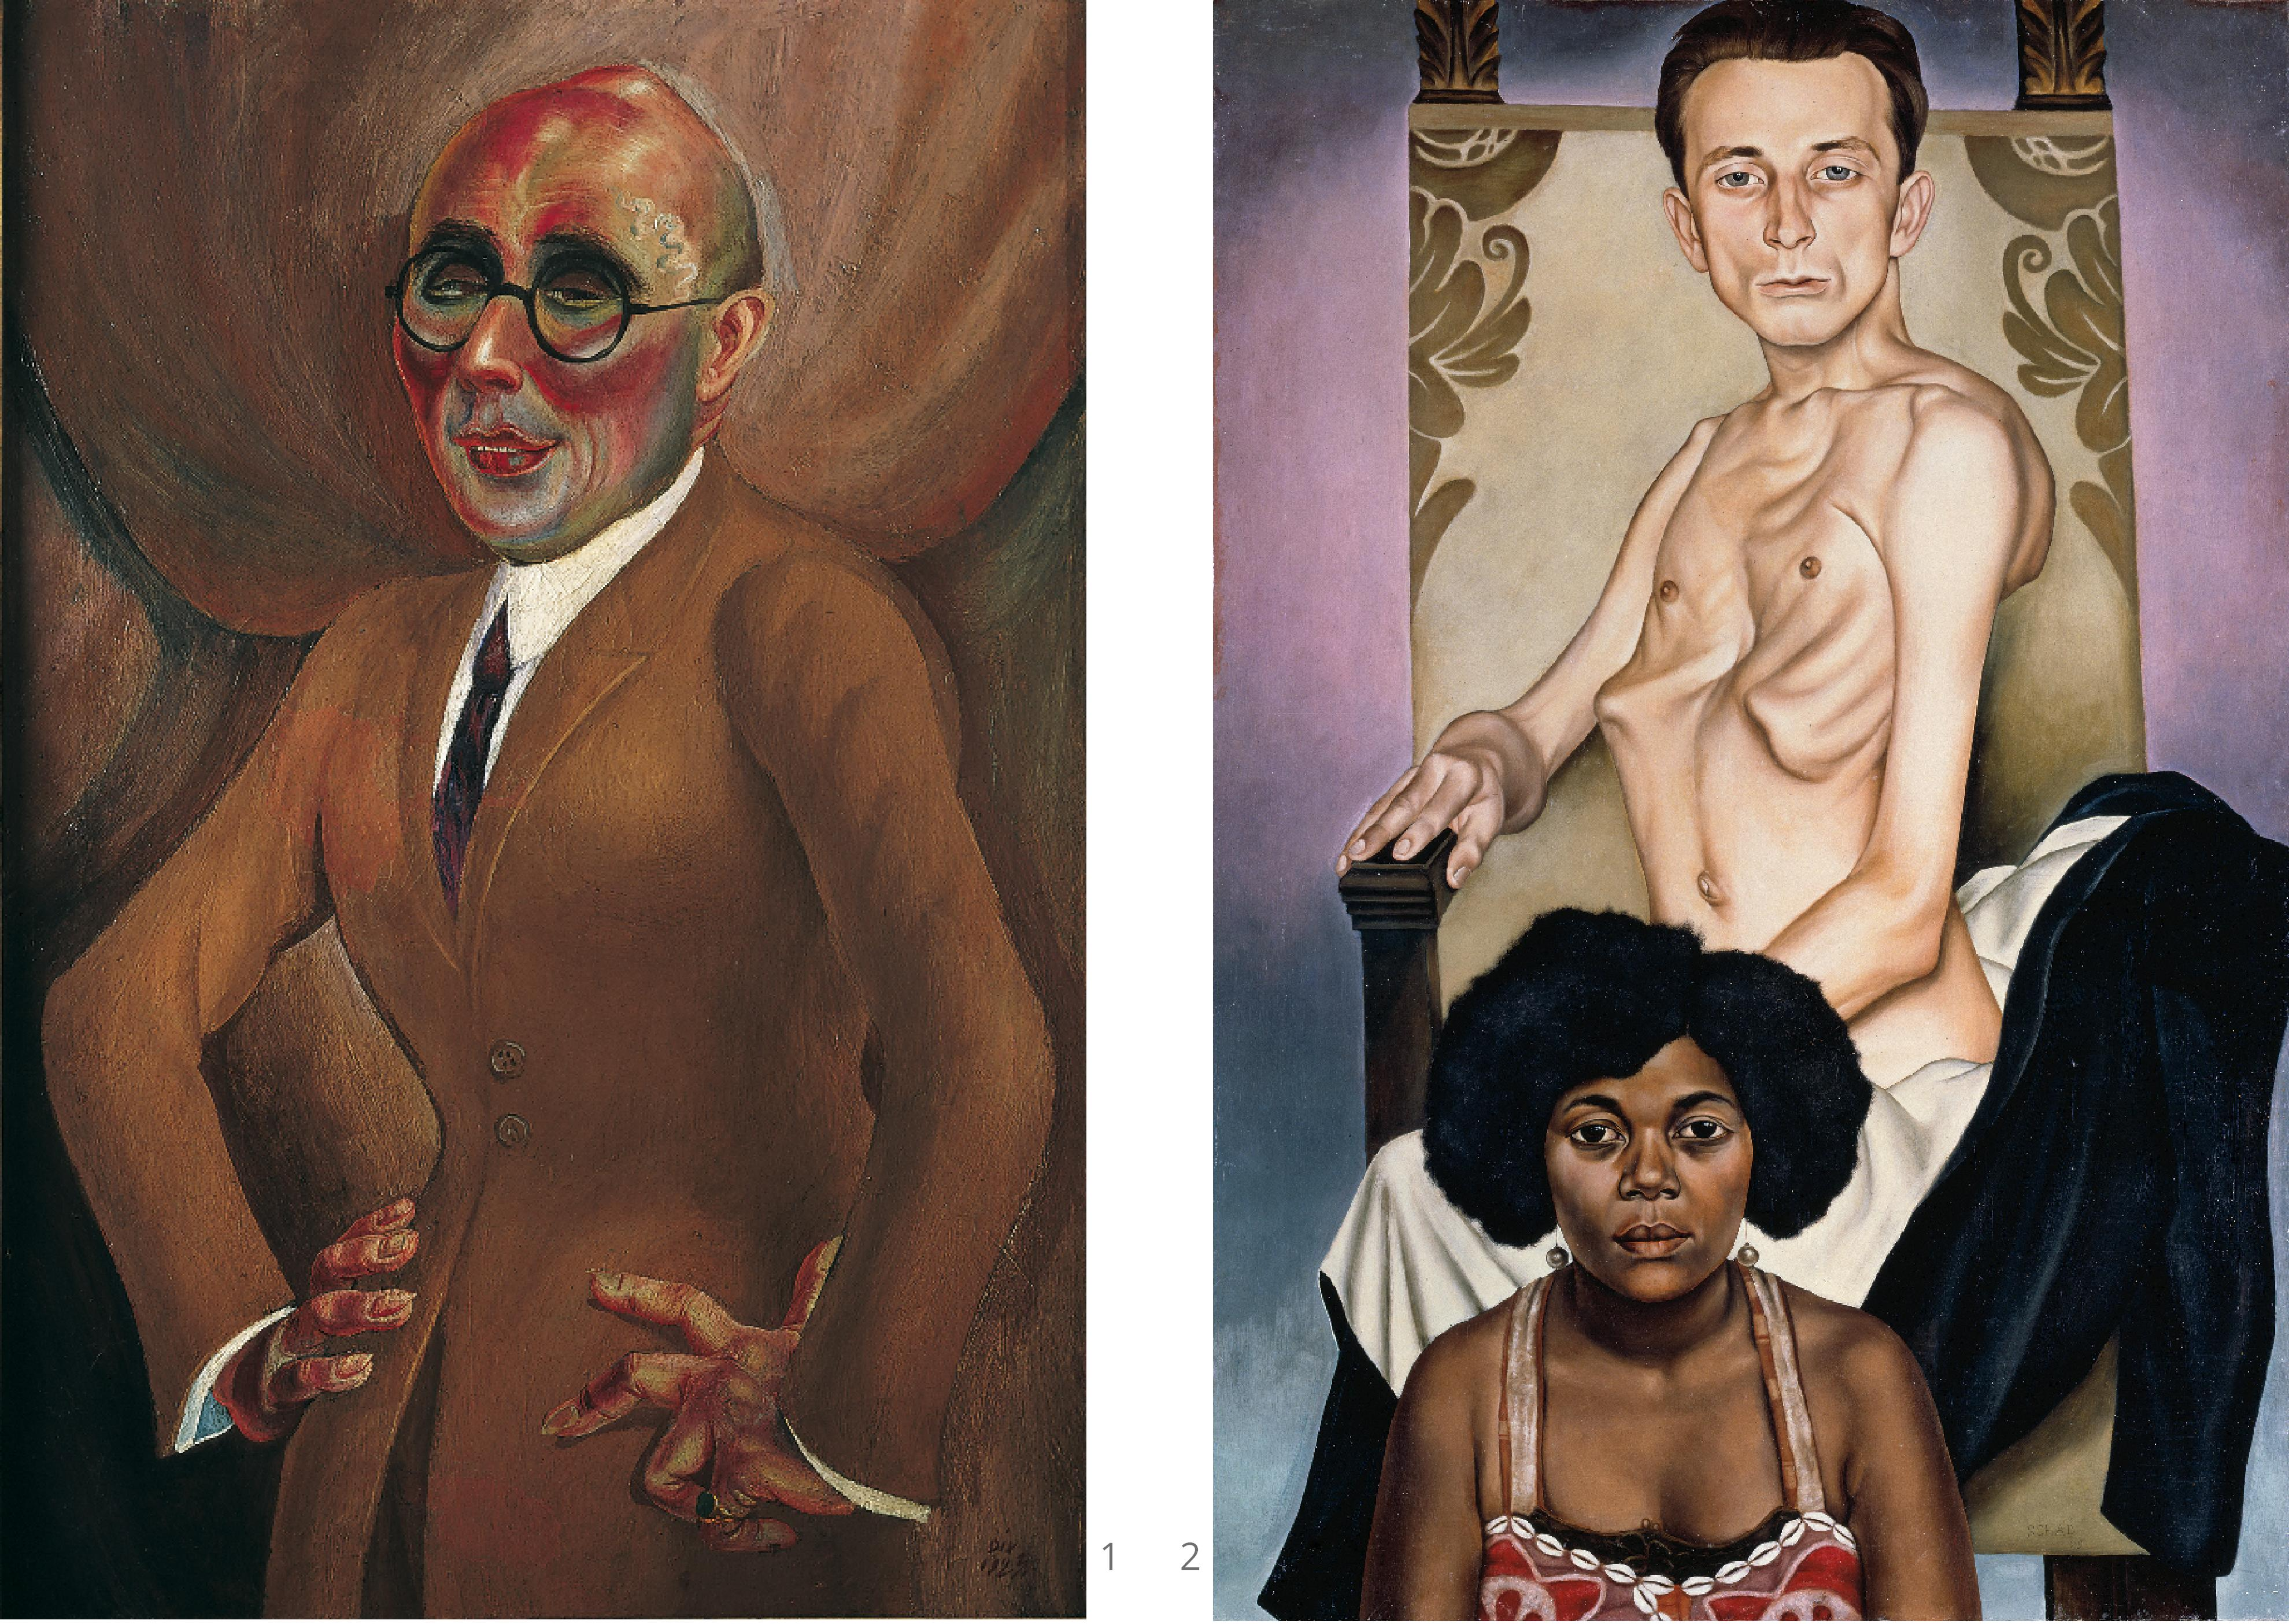 otto dix the jeweller karl krall_christian schad agosta the winged one and rasha the black dove